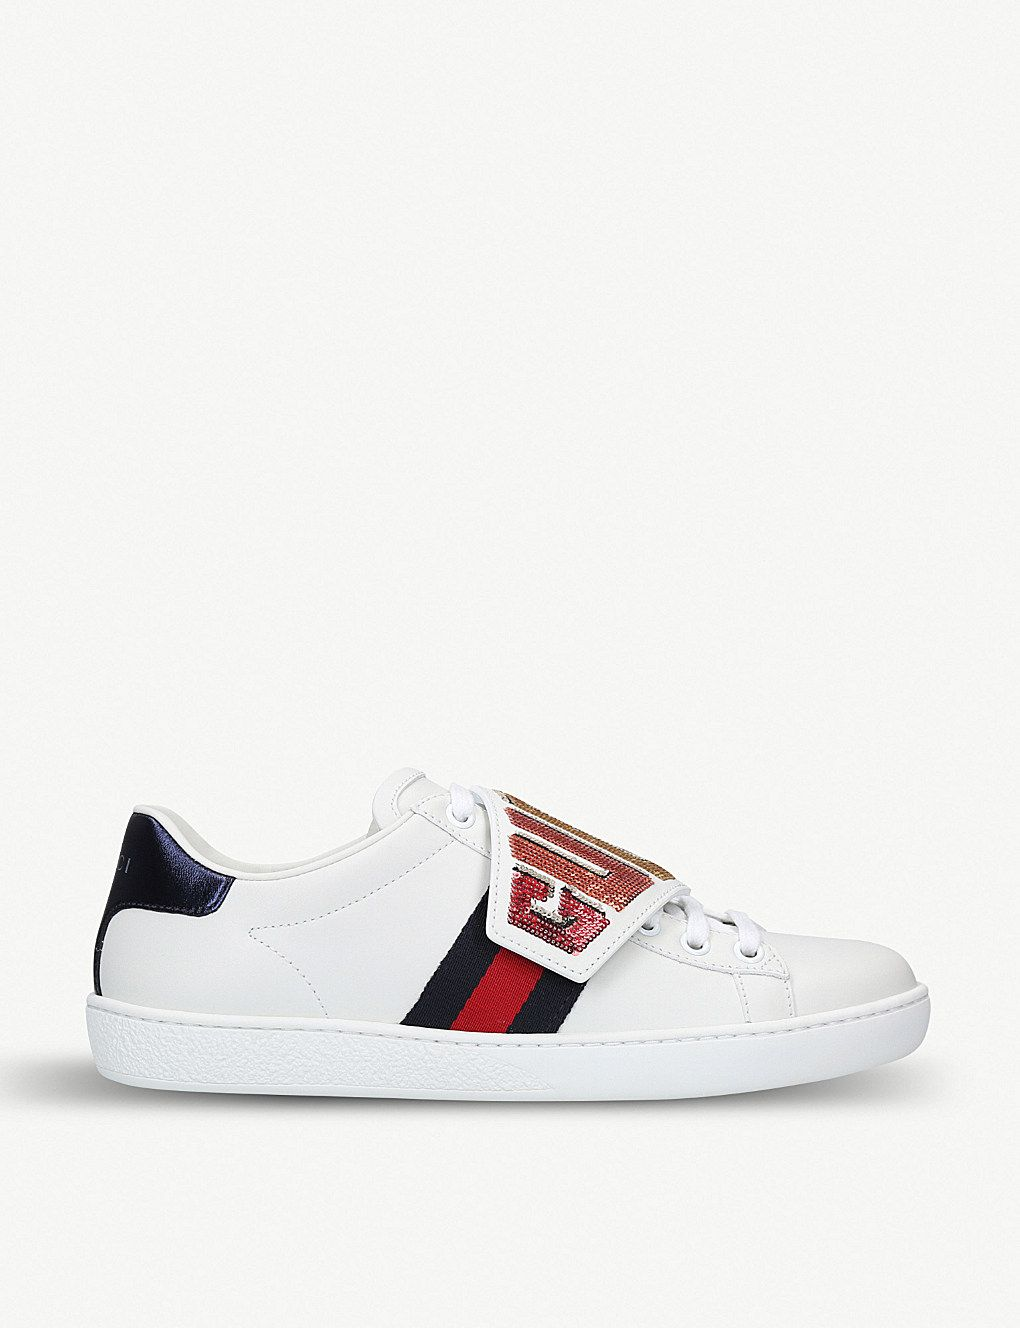 a1c8cbad6251 GUCCI - New Ace sequin-embellished leather trainers